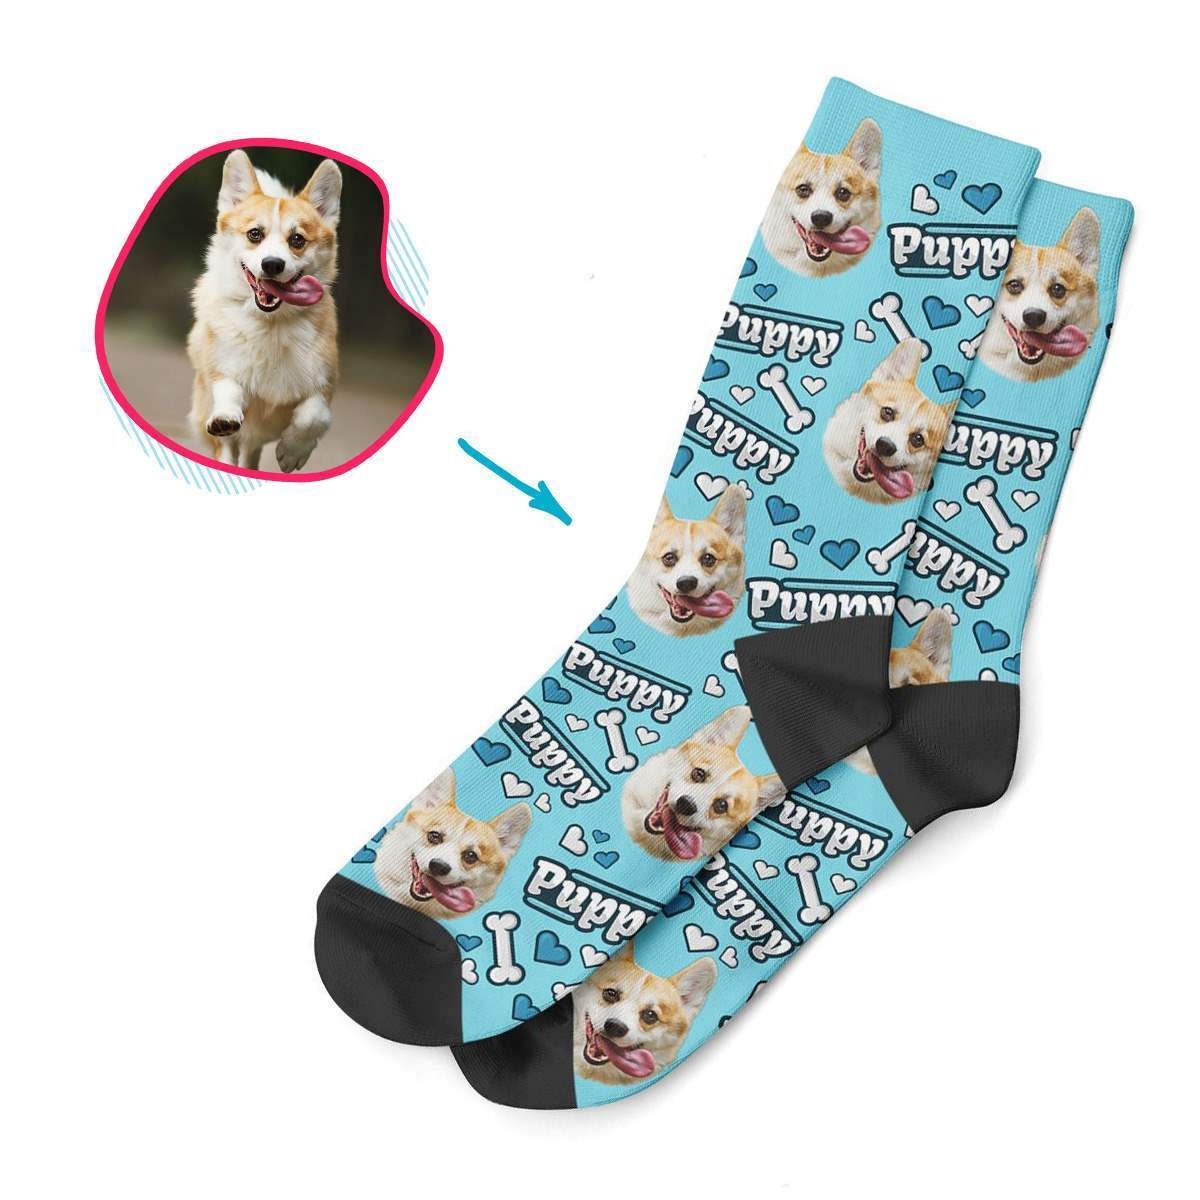 blue Puppy socks personalized with photo of face printed on them